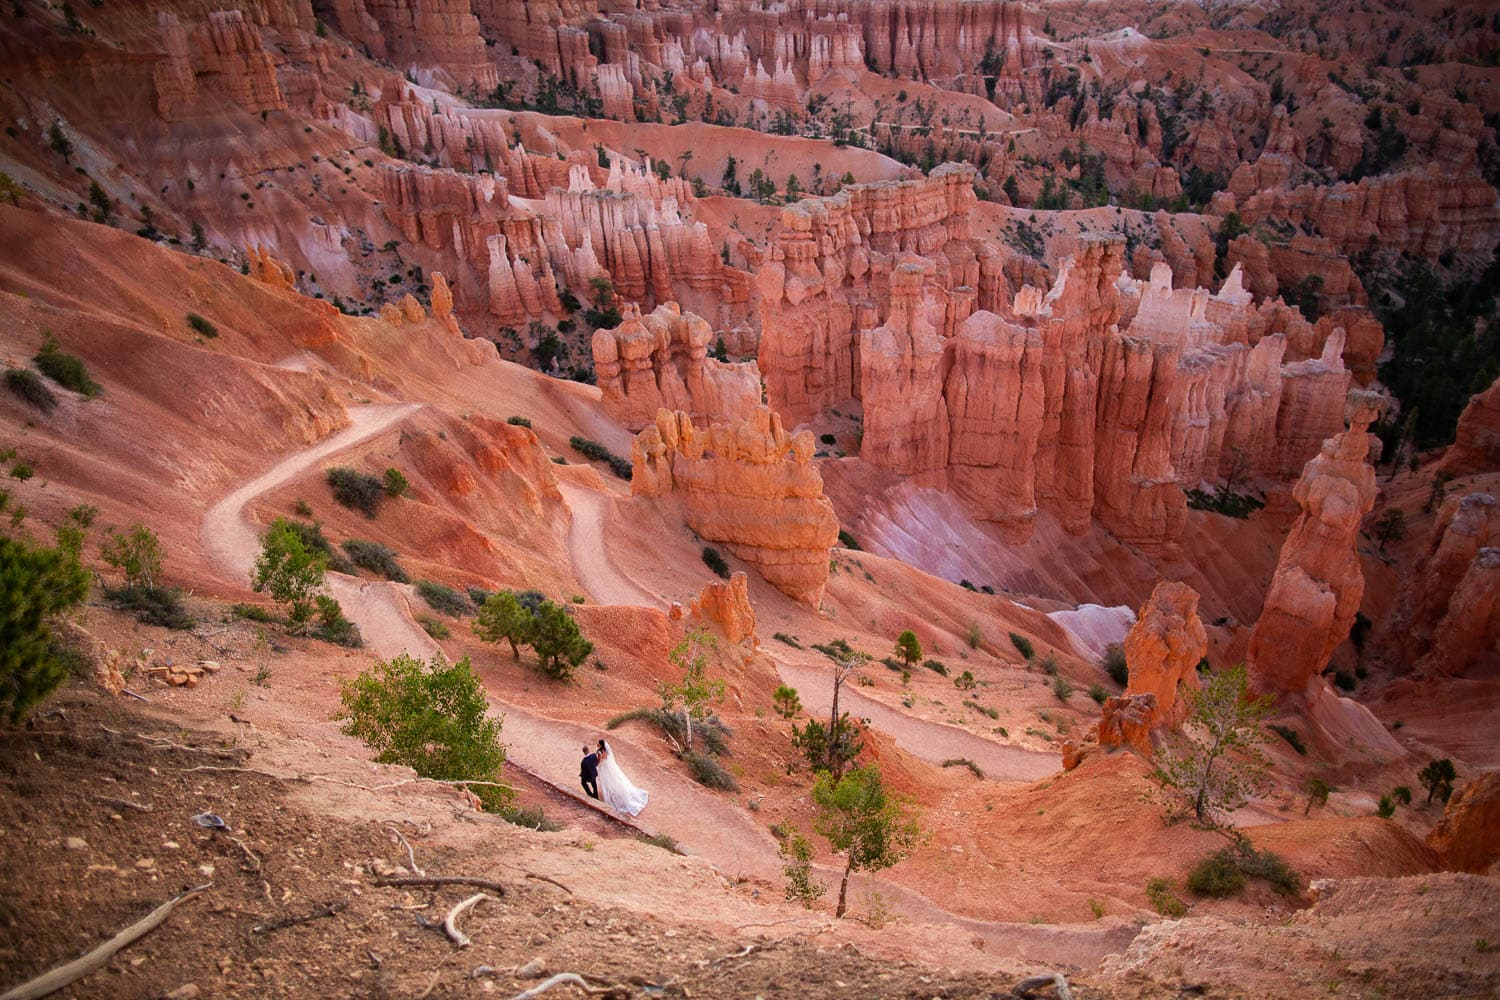 A landscape photo of Bryce Canyon amphitheater with a wedding couple strolling through.